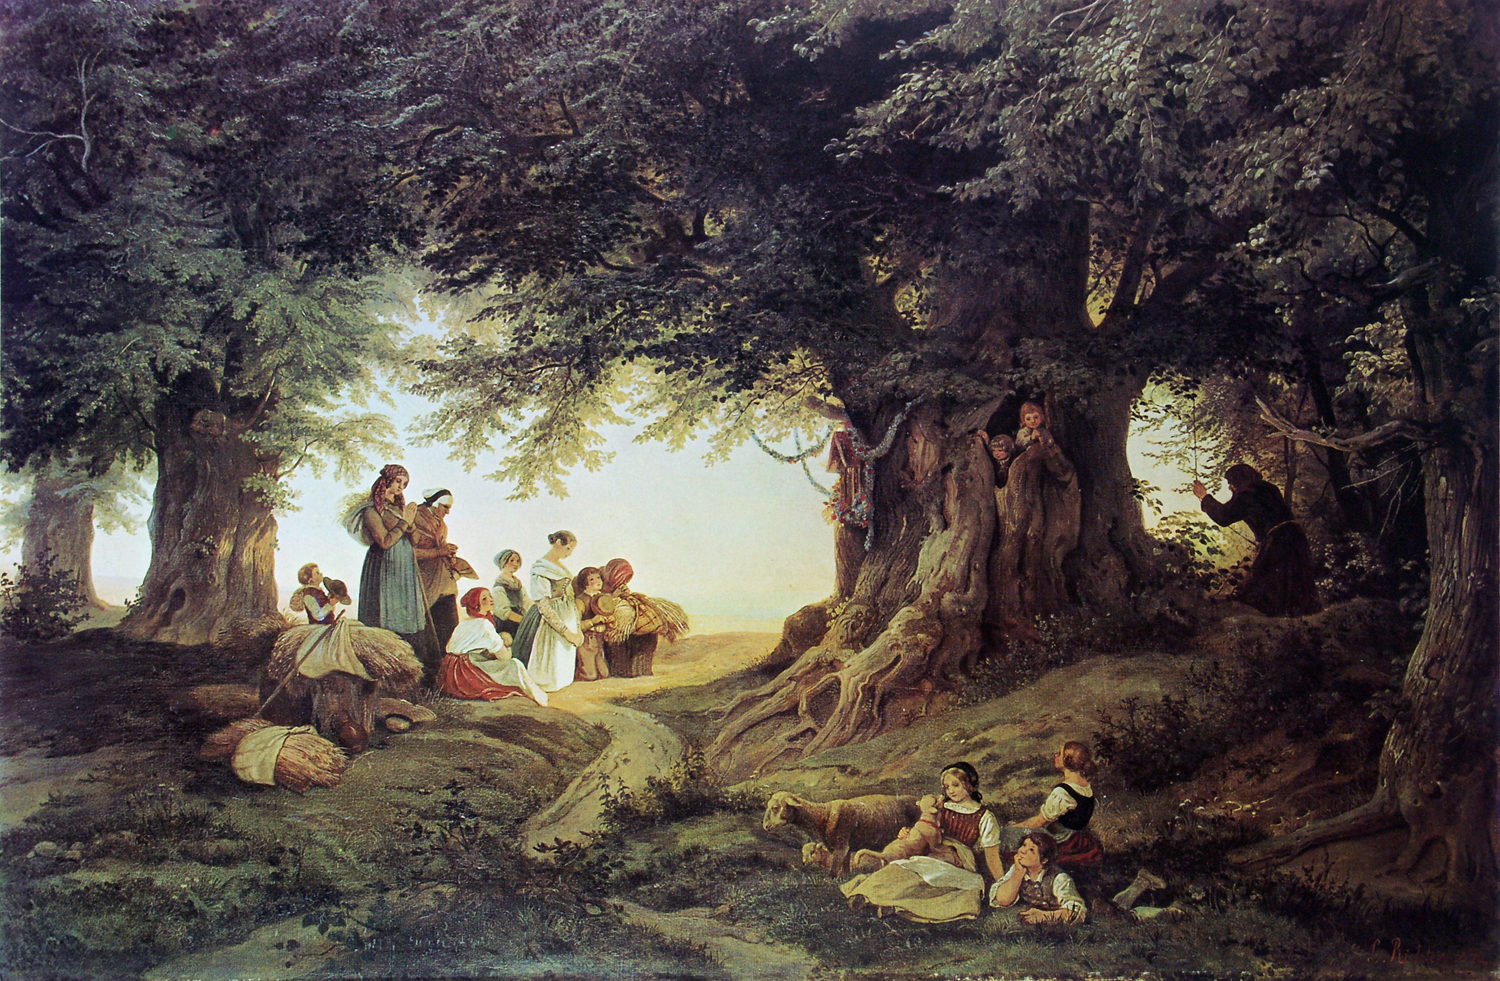 """early romantism Sutherlin 1 coleridge's """"kubla khan"""" as an illustration of romanticism although best known for his poetry, samuel taylor coleridge was also an important literary critic who helped to popularize the romantic movement among english speaking peoples."""